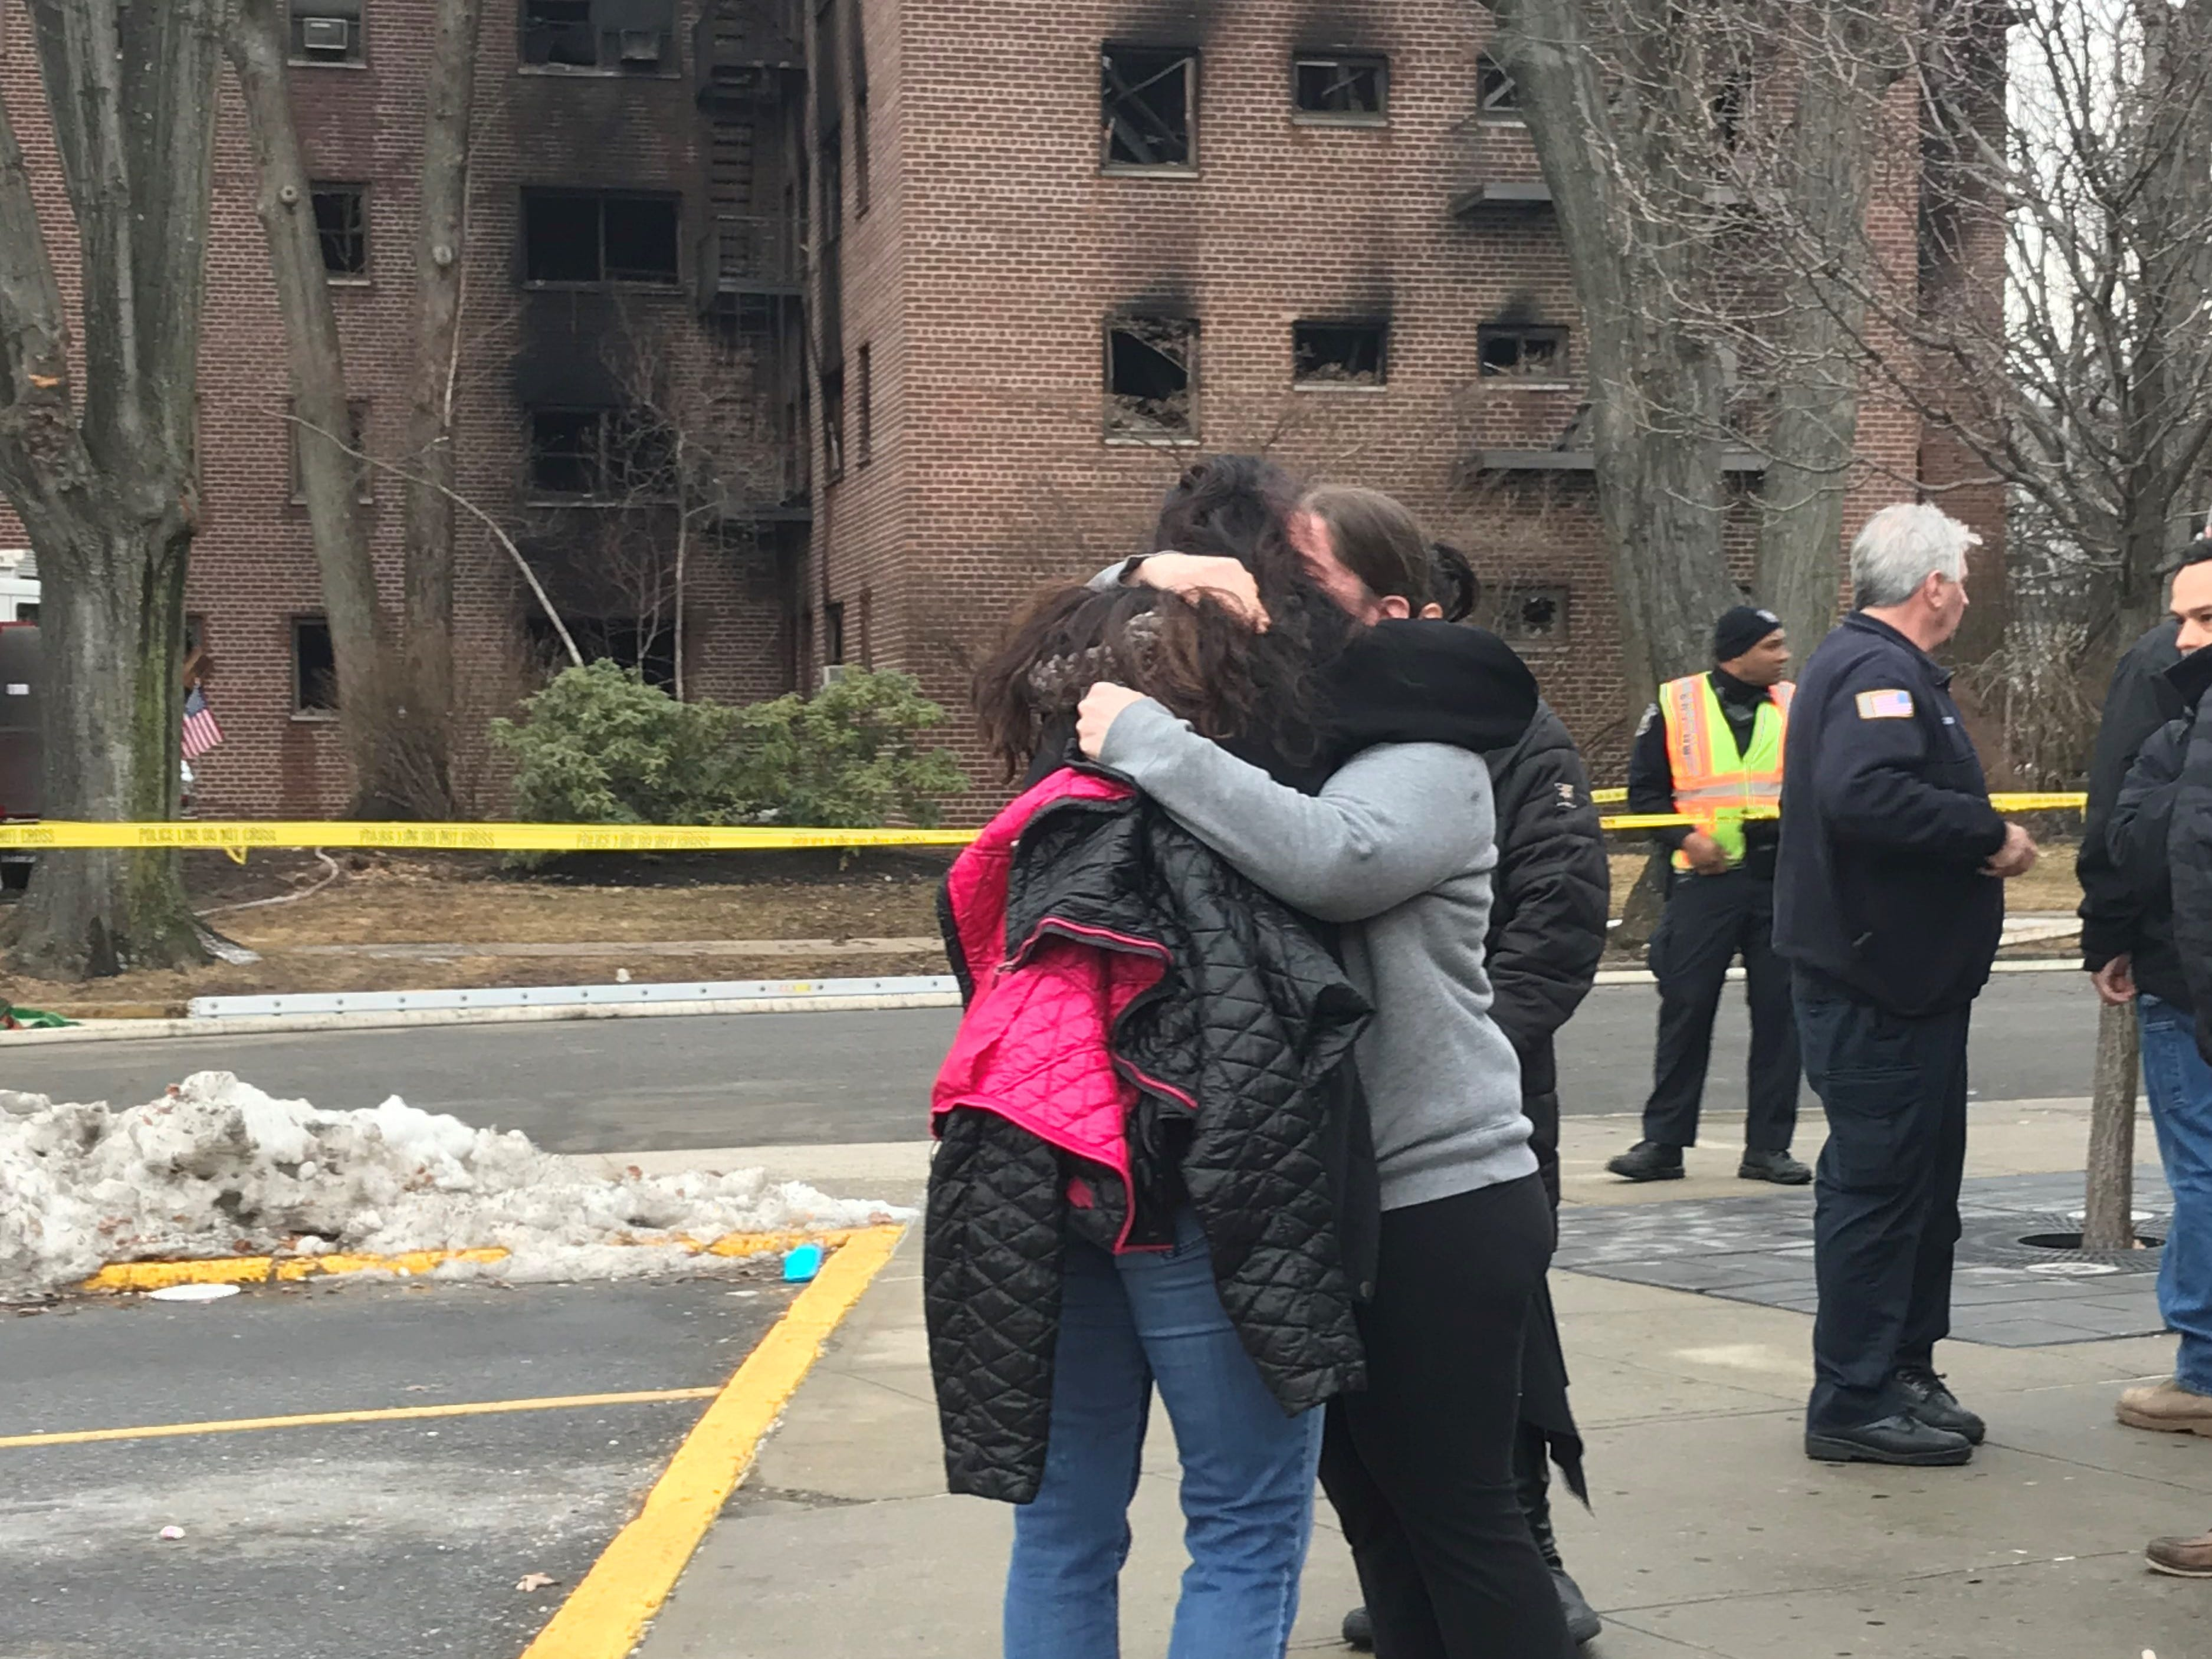 Megan Gaul, a resident of the Linwood Park building that caught fire in Fort Lee, shares an embrace after being told by firefighters that her cat Elijah was found alive.